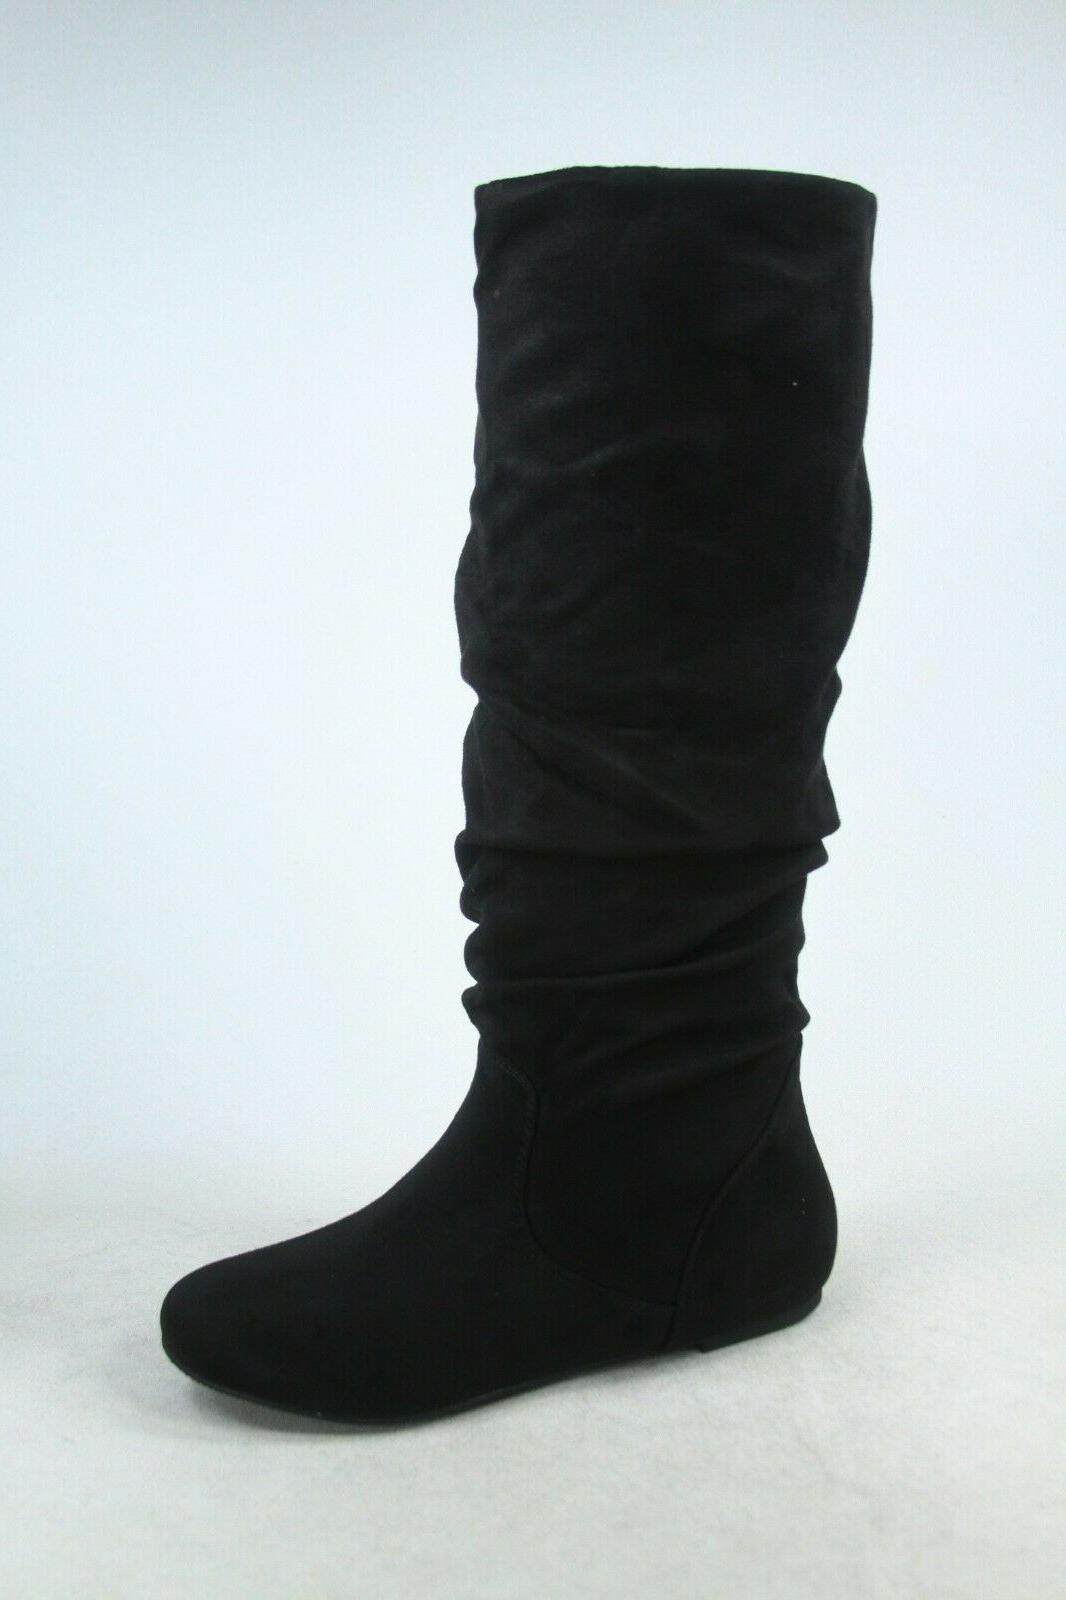 NEW Women's Leather Flat Knee High Boots Size 6 -